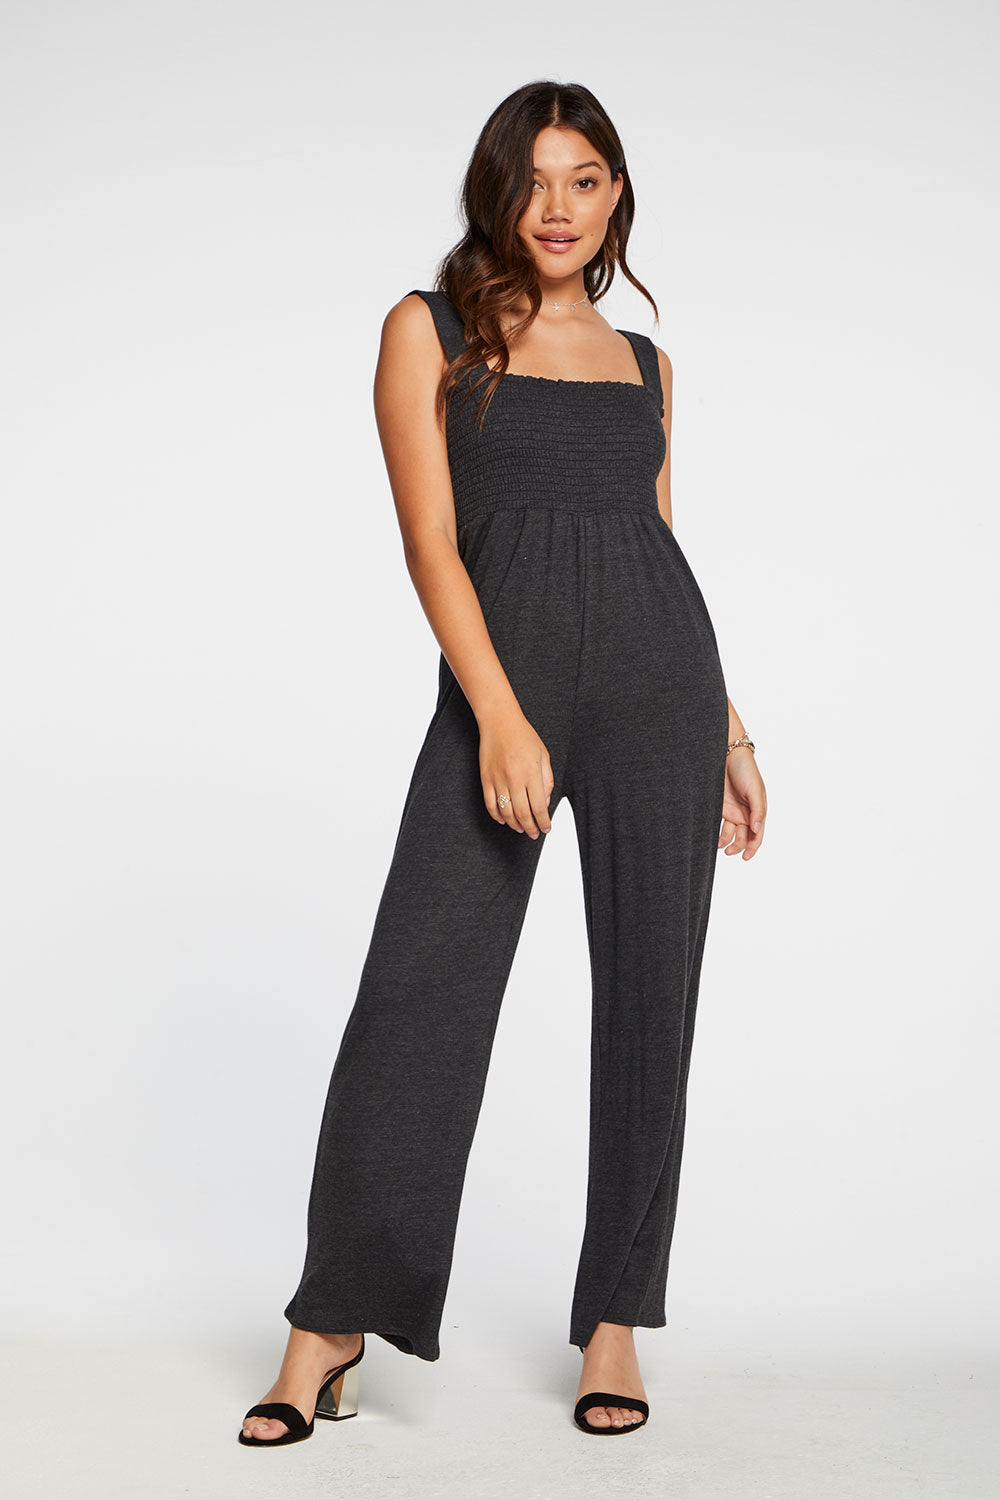 Triblend Jersey Wide Leg Smocked Cami Jumpsuit in Black WOMENS chaserbrand4.myshopify.com